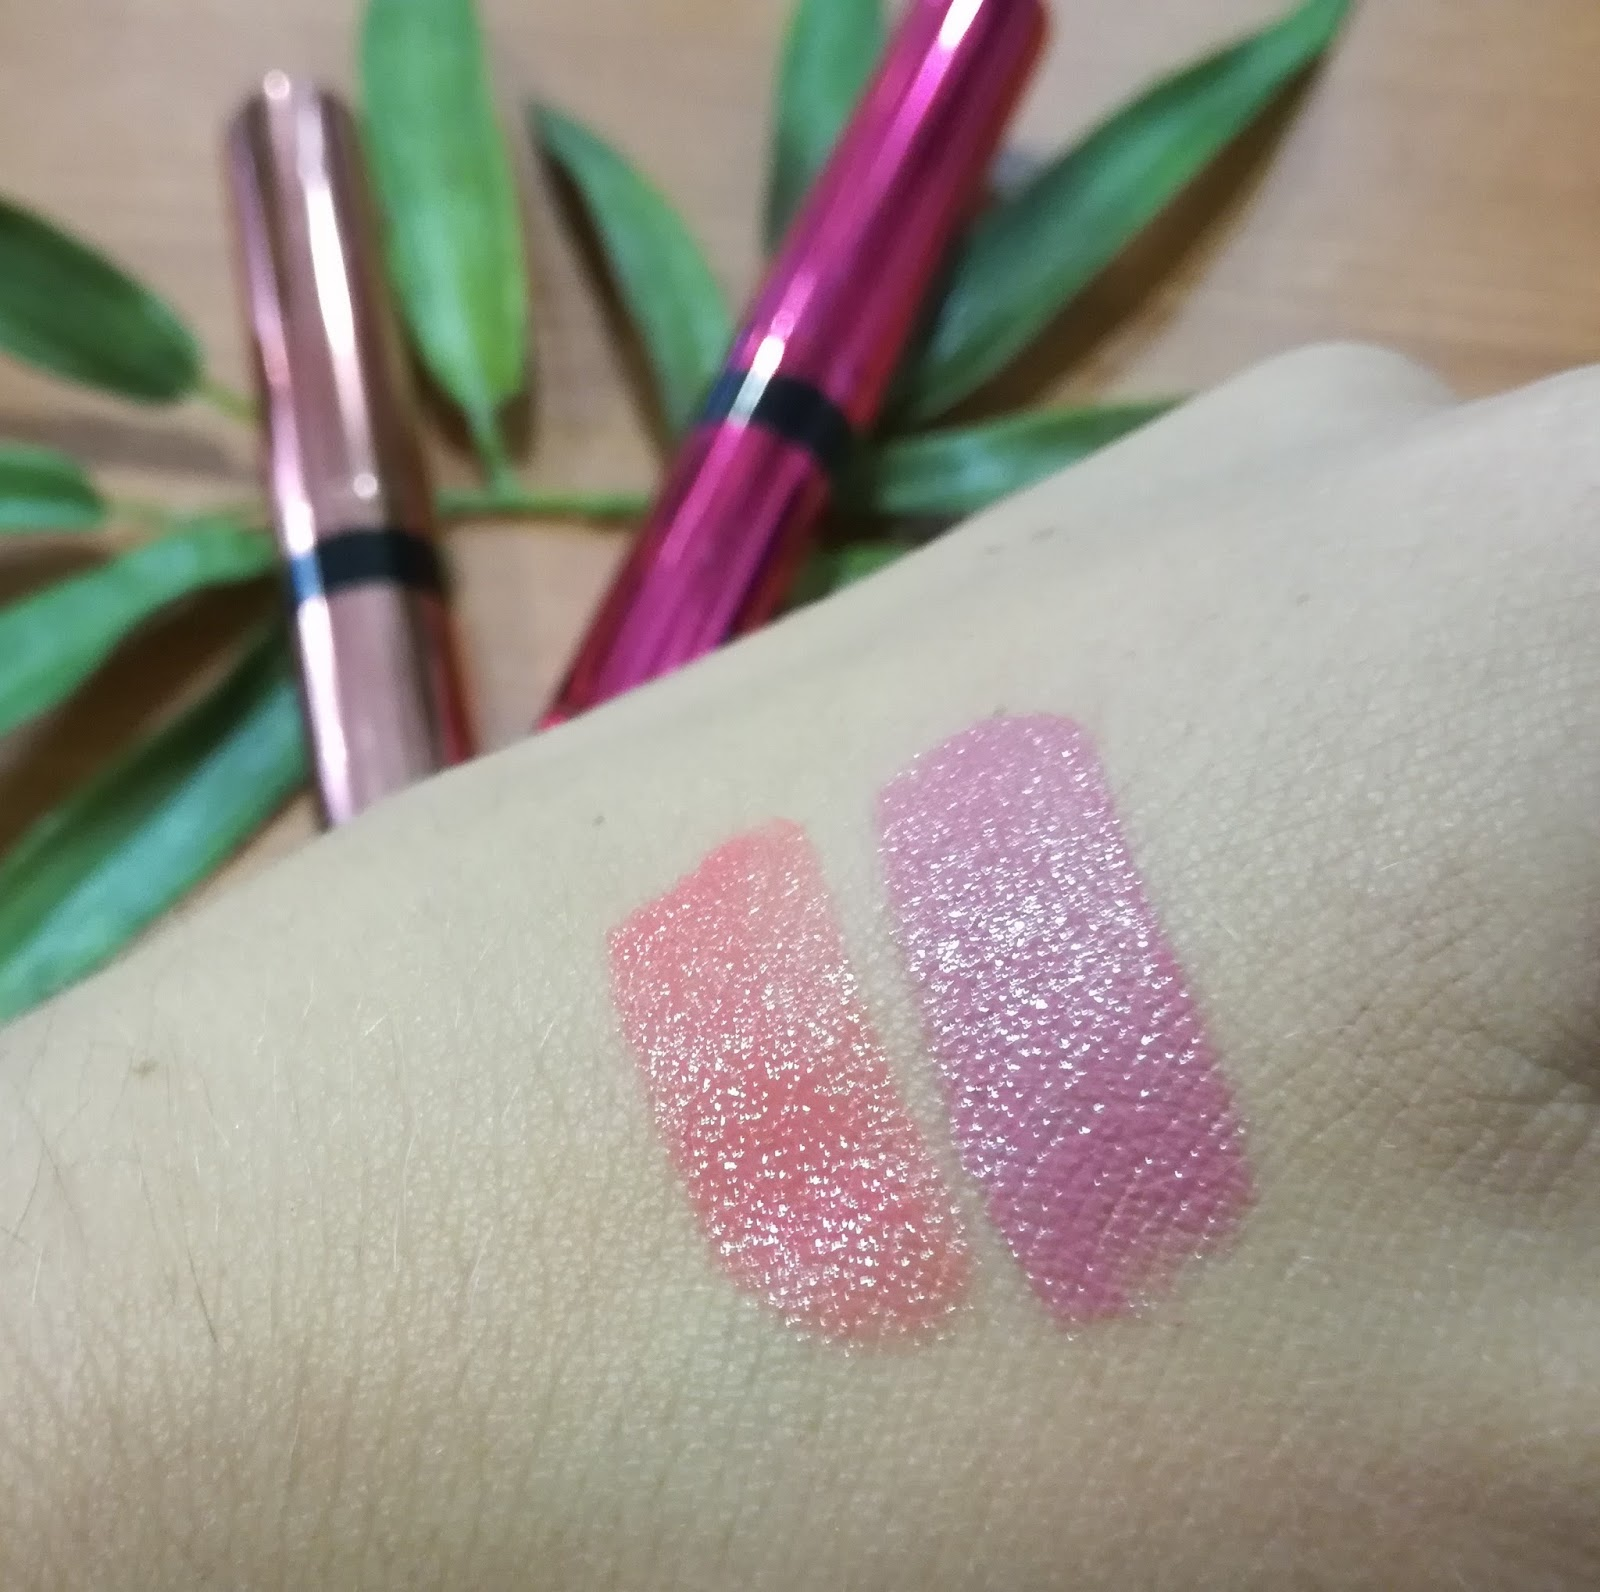 AVON-SHINE-BURST-GLOSS-STICKS-swatch